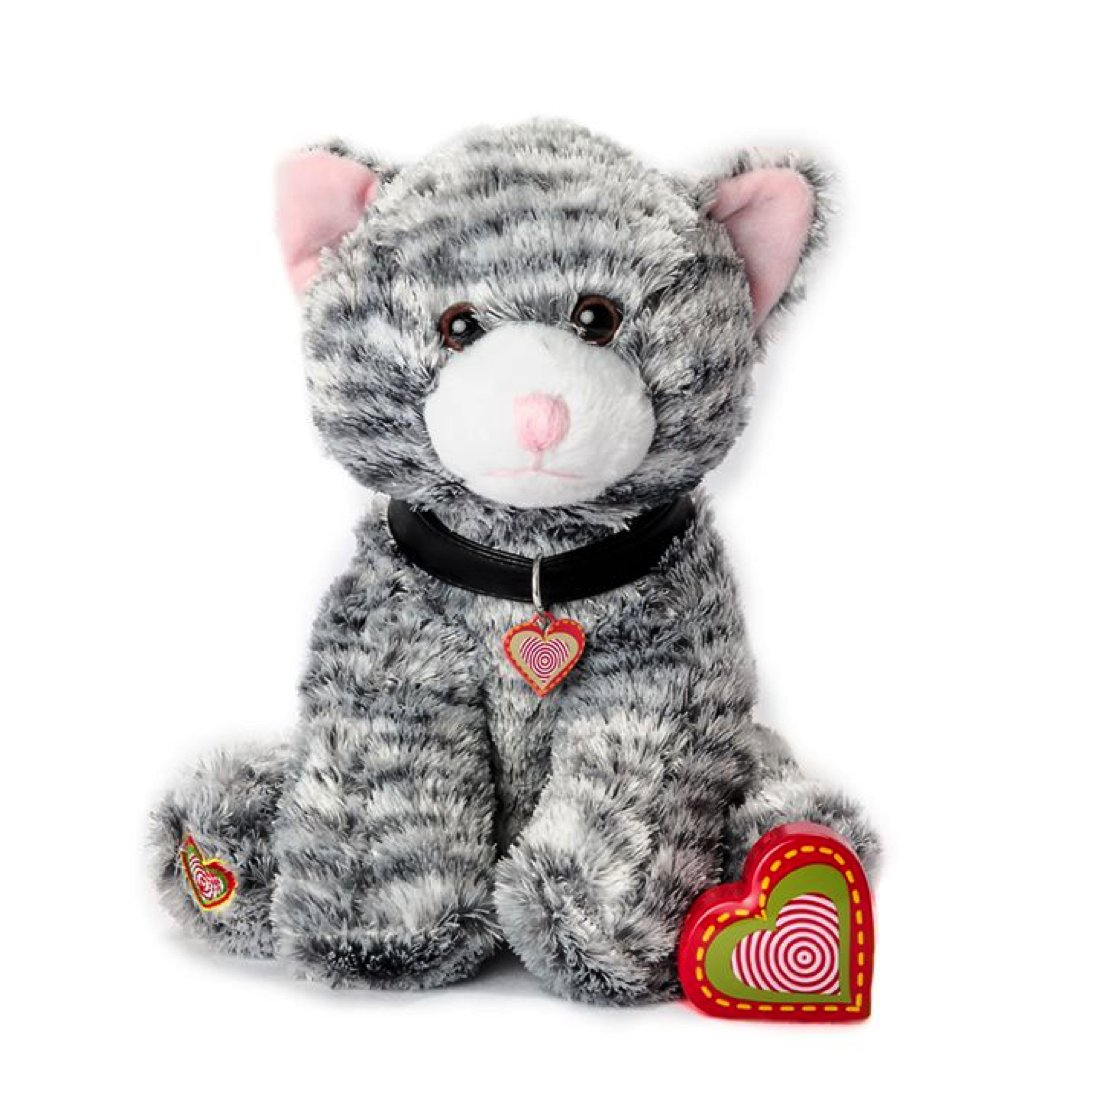 My Baby's Heartbeat Bear - Furbaby's Adorable Stuffed Animal with 20 Second Voice Recordable Heart - Gray Kitty